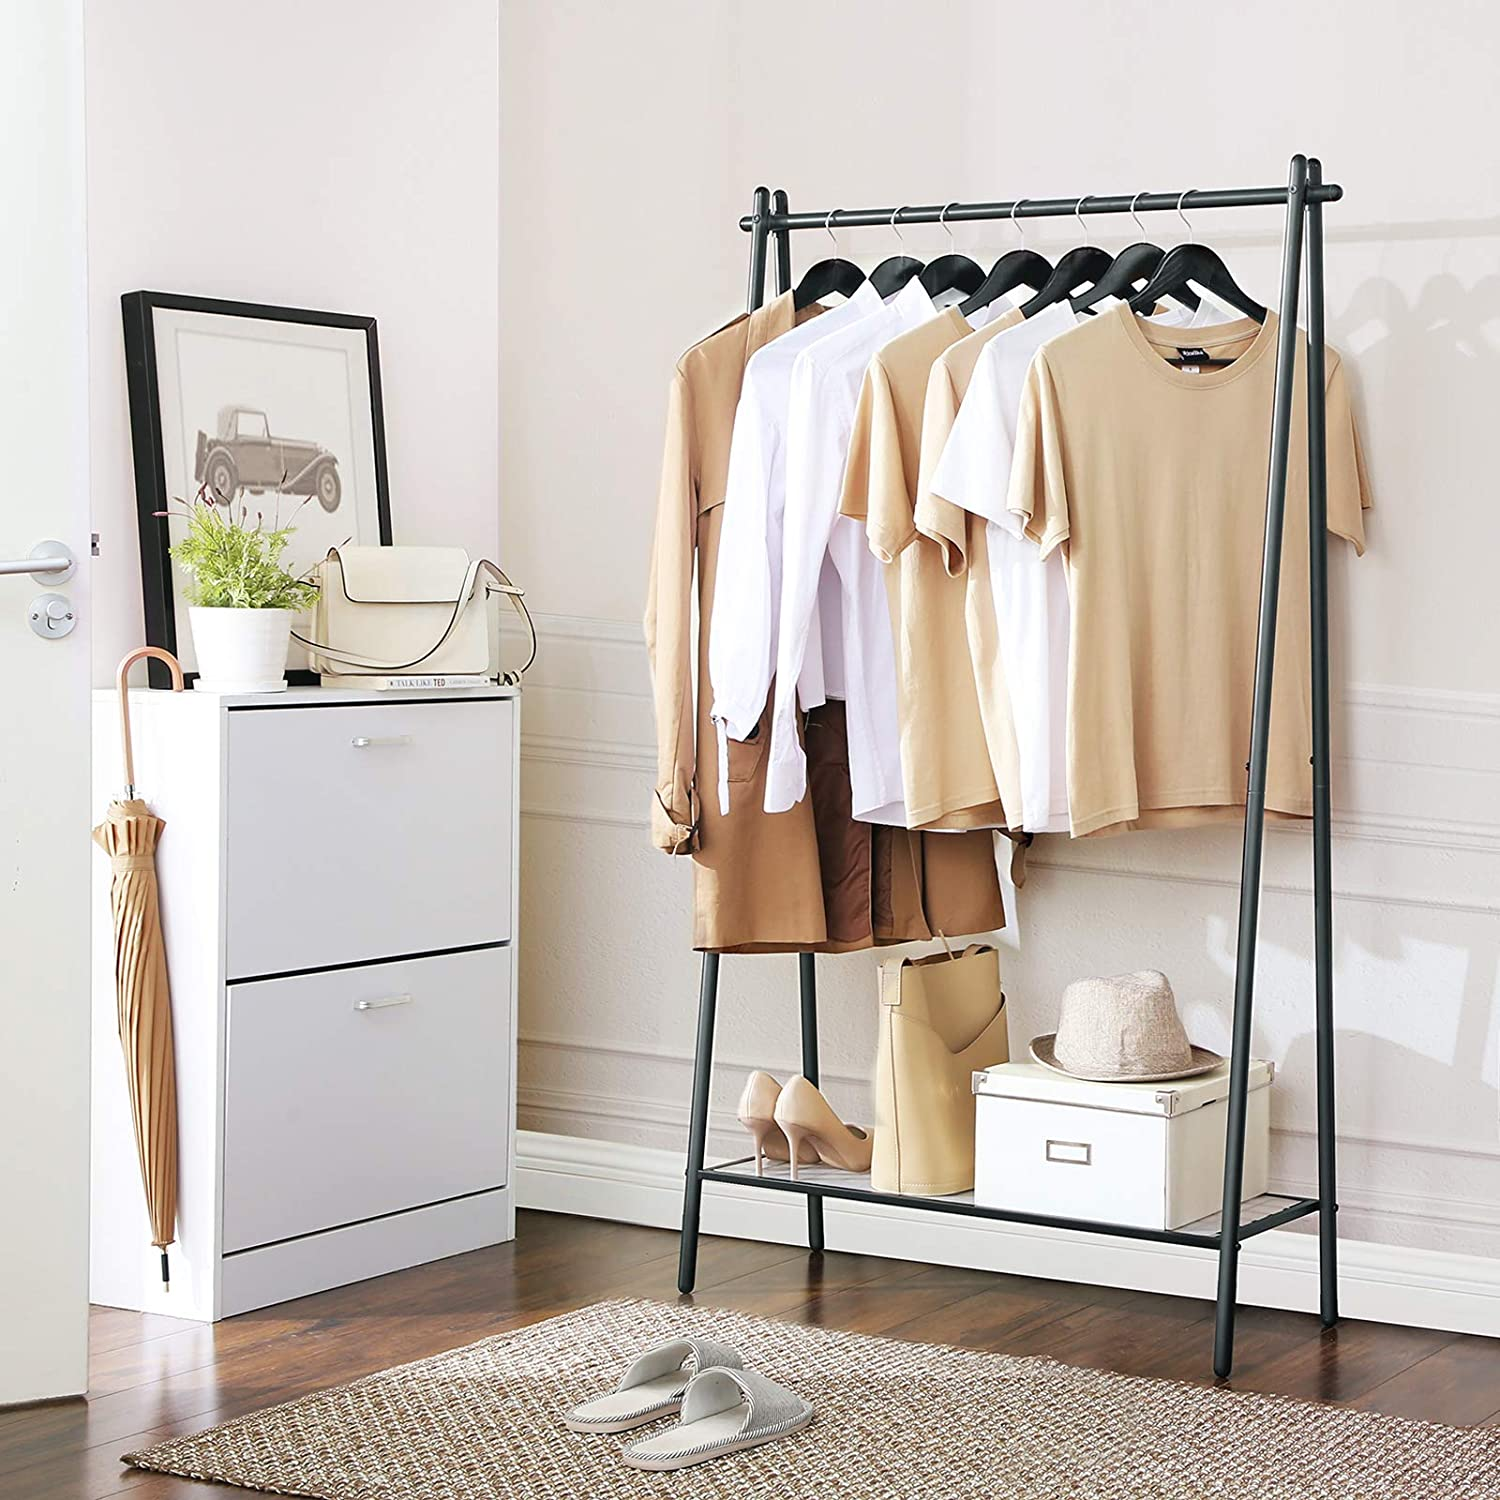 SONGMICS Clothes Garment Rack with Iron Structure, Clothing Rack with Hanging Rail, Bottom Shelf, Simple Look, for Bedroom Entrance Attic Basement, ...